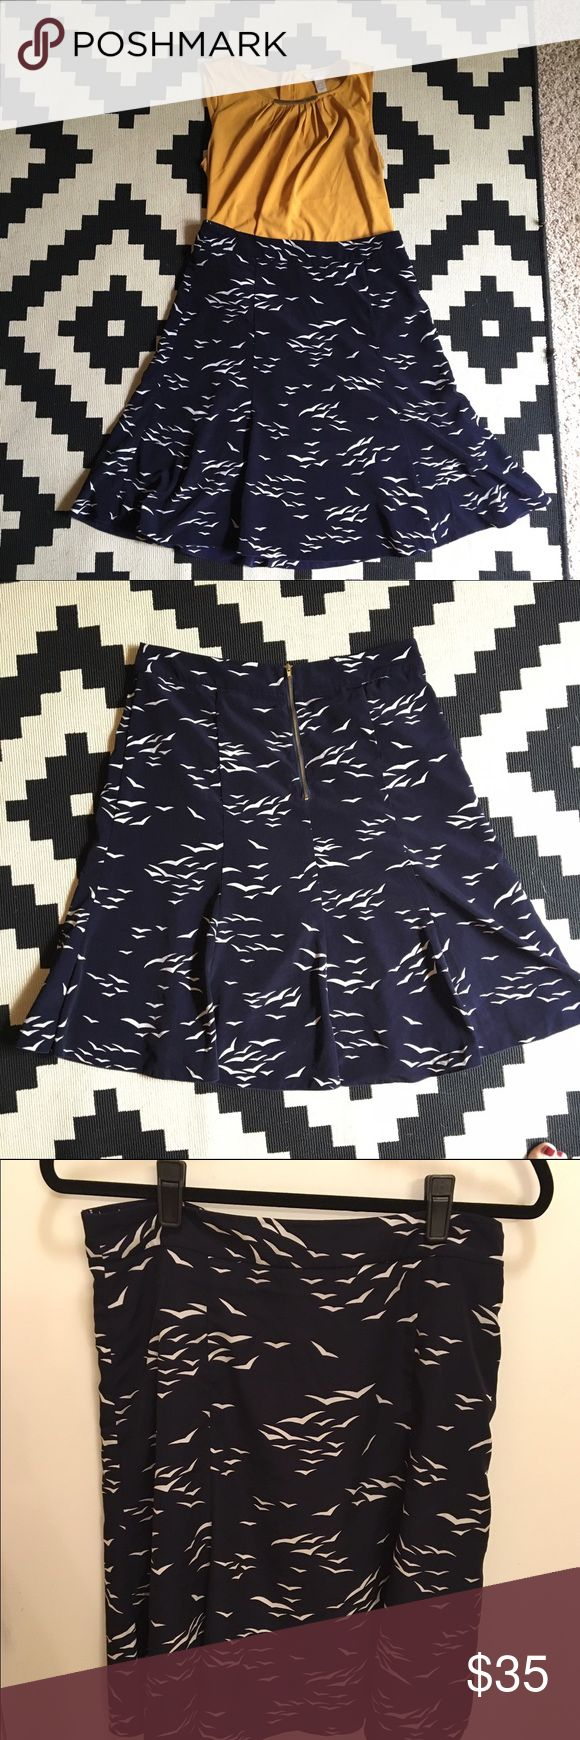 Flirty Banana Republic Navy Bird Skirt This skirt has a cute, flouncy flare at the bottom. It is navy with white birds and a gold zipper in the middle in the back. Looks best worn as a high-waisted skirt with shirt tucked in. Listing is for skirt only. Banana Republic Skirts A-Line or Full